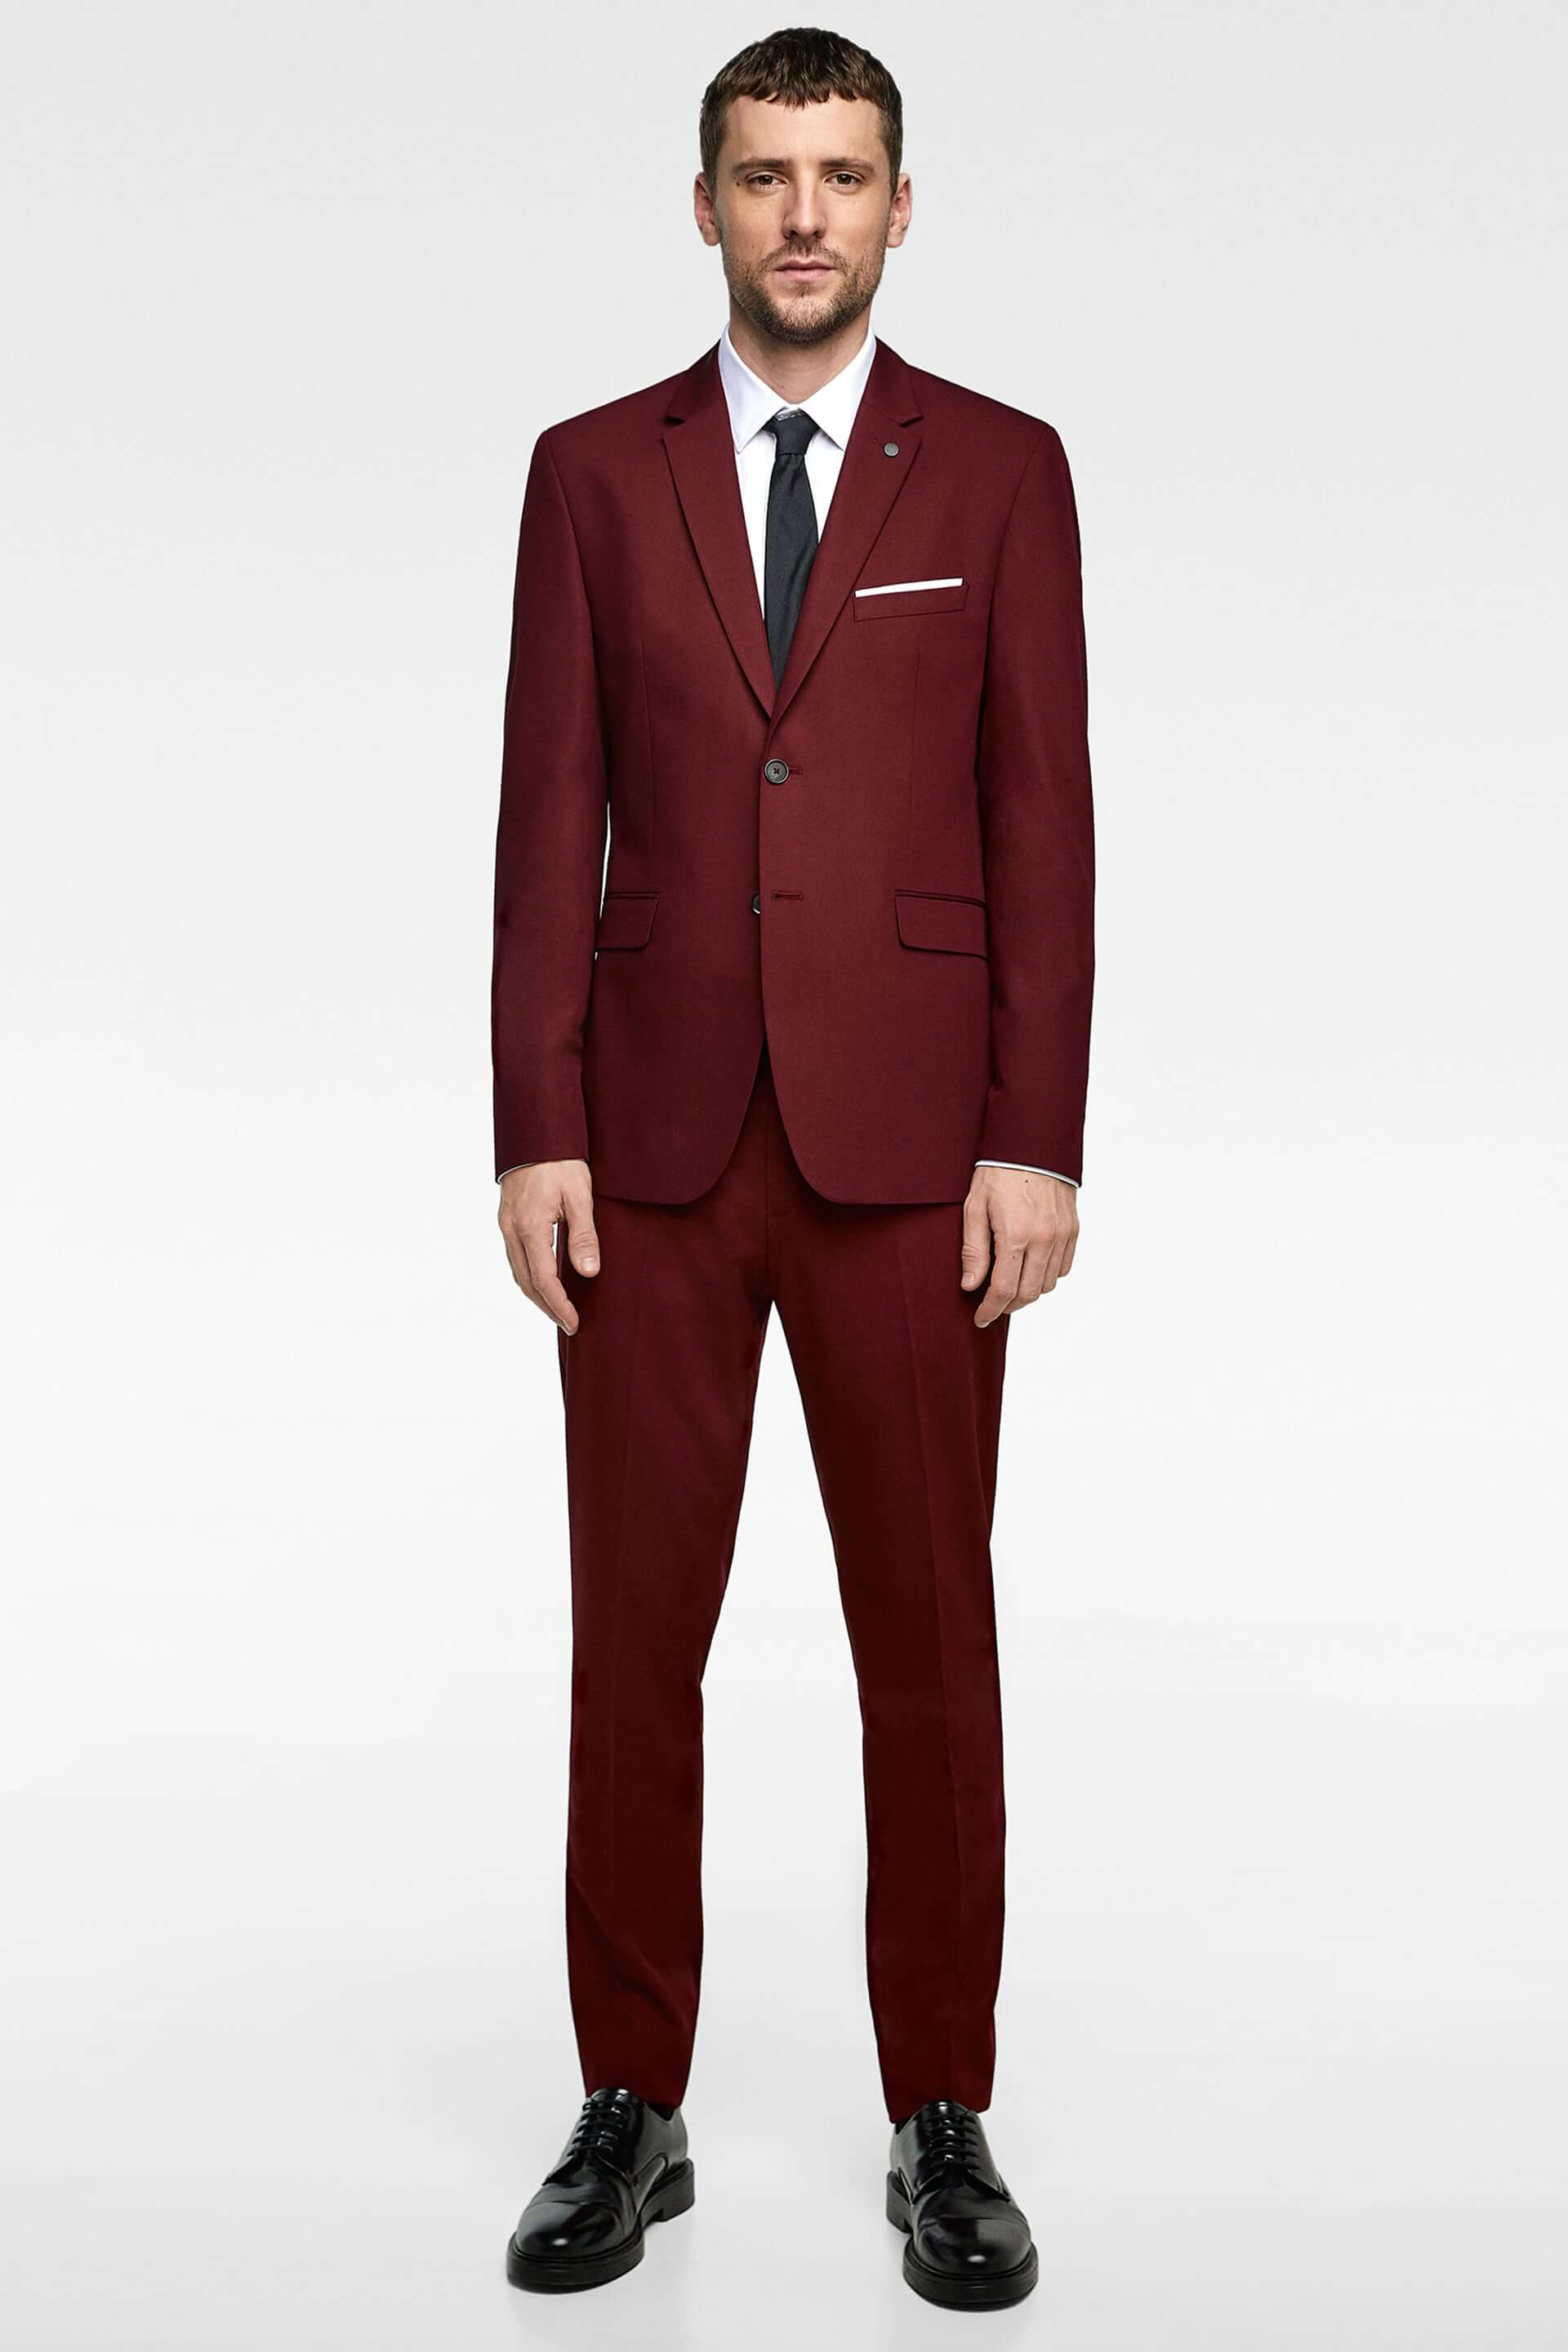 zara - Best suits